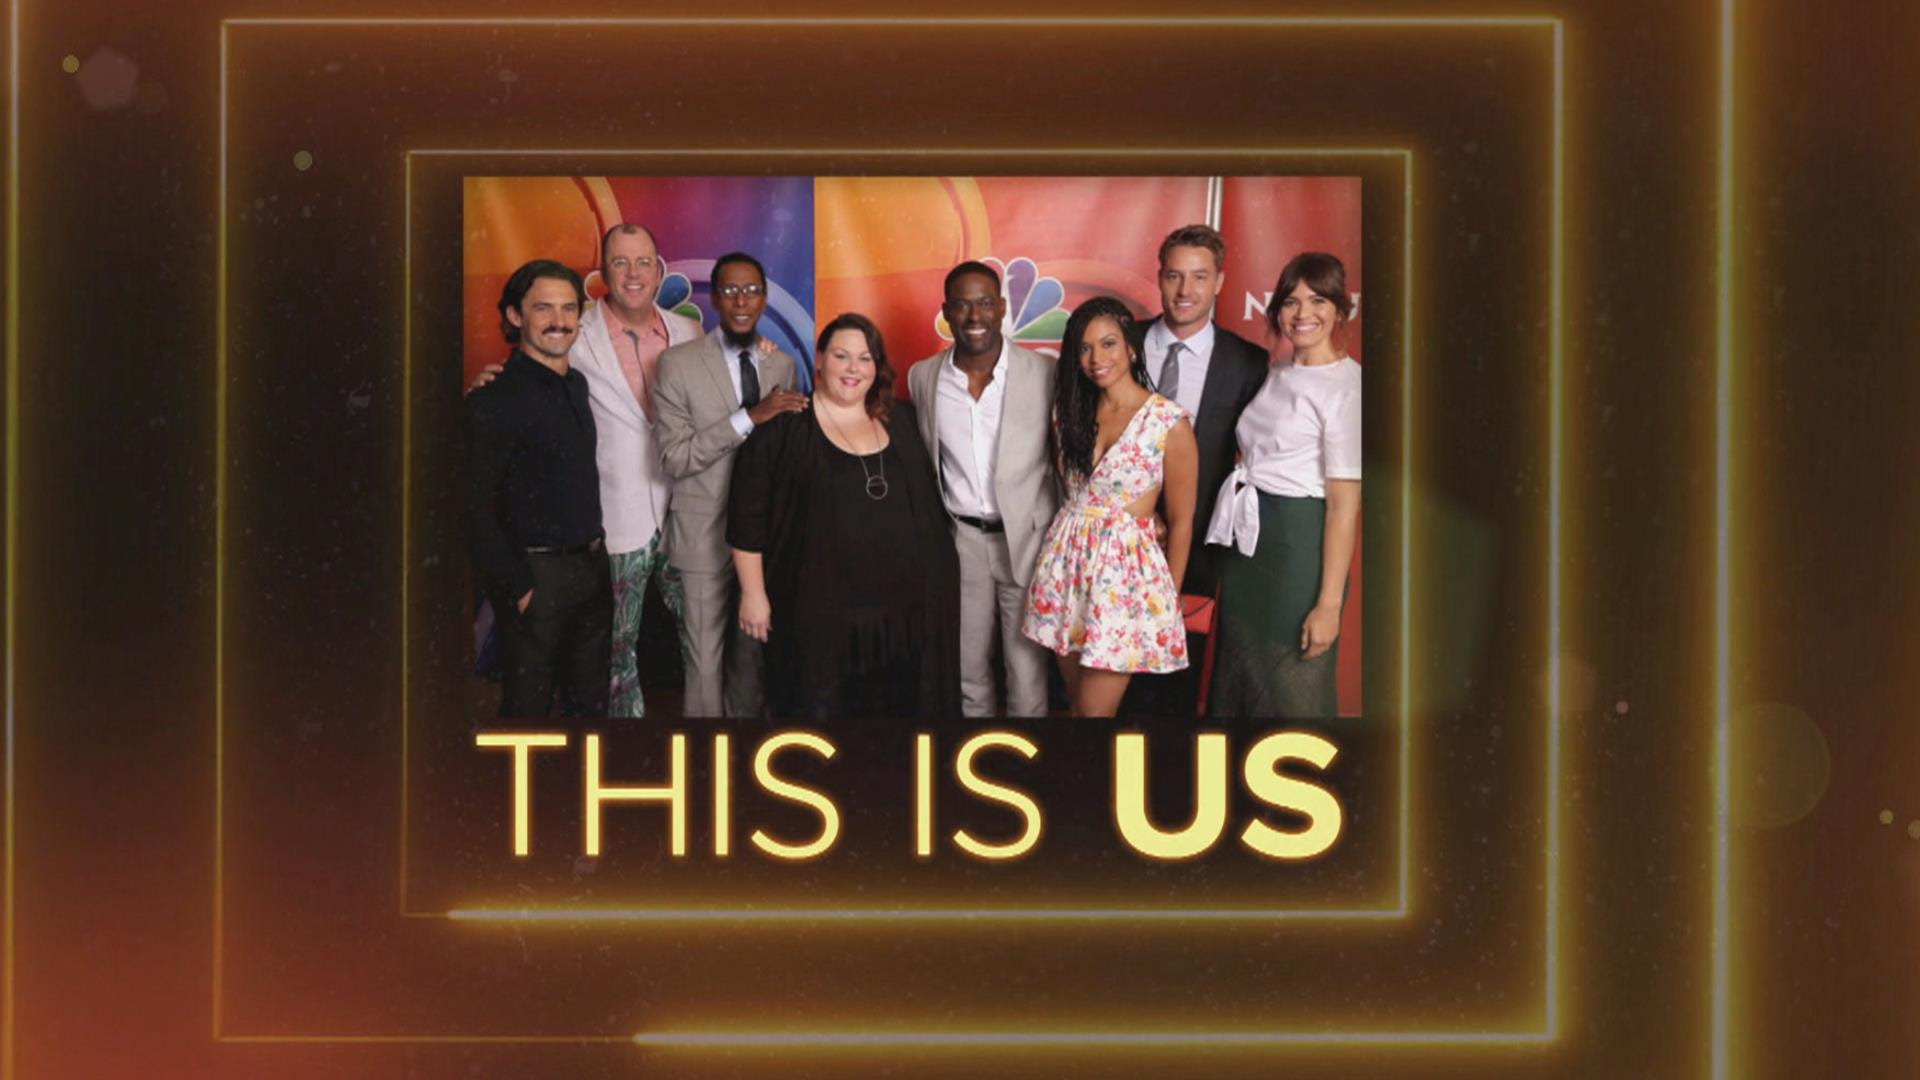 This Is Us Actors Share What Its Like To Work On The Powerful Drama